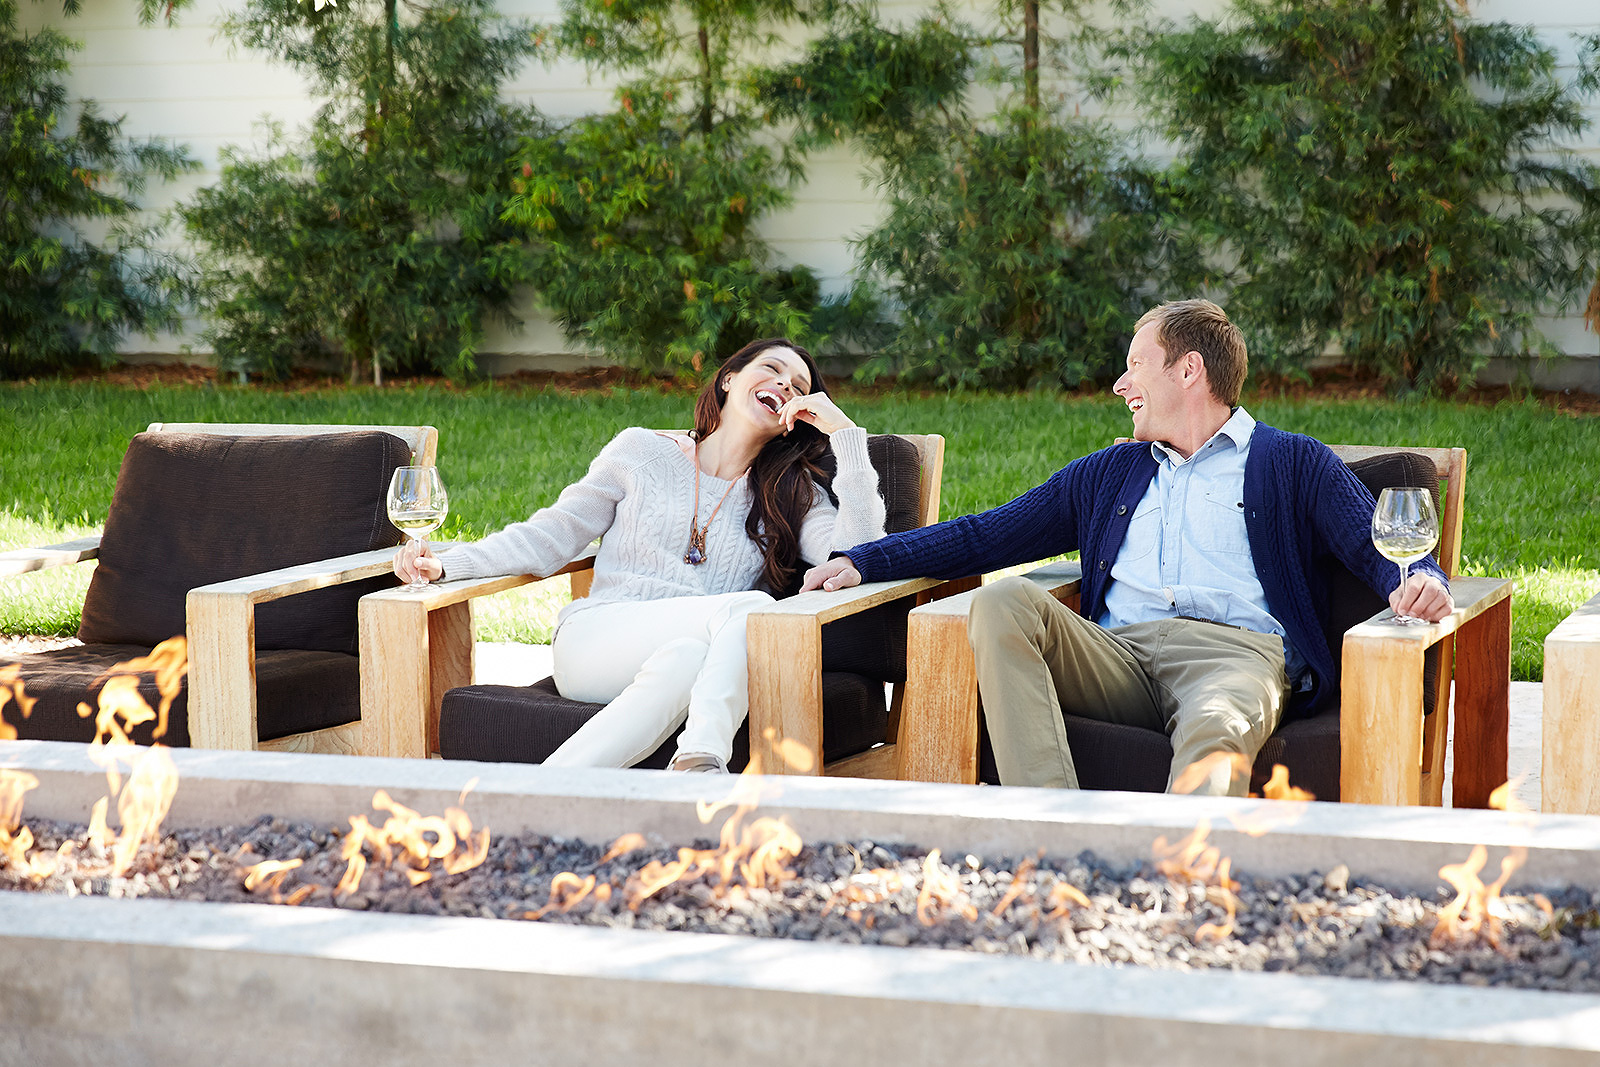 Fire pit at Solage resort in Napa Valley, CA  | Trinette+Chris Photographers